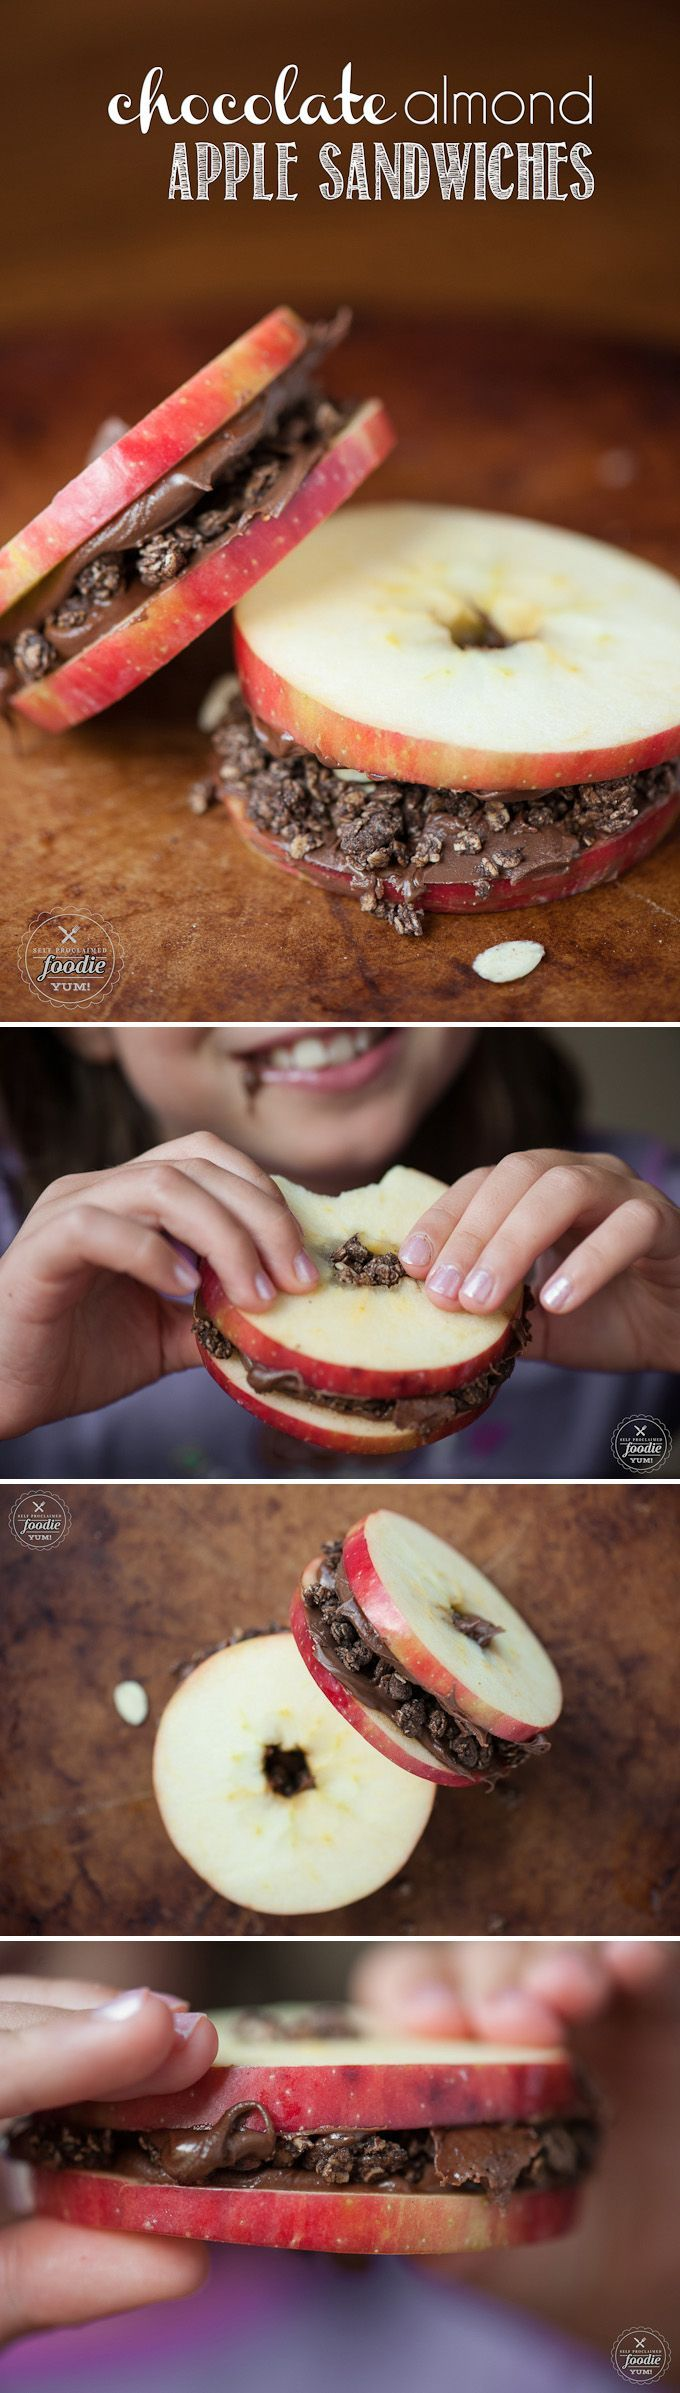 Chocolate Almond Apple Sandwiches are an easy and fun to make treat that your kids will love, especially as an after school snack.